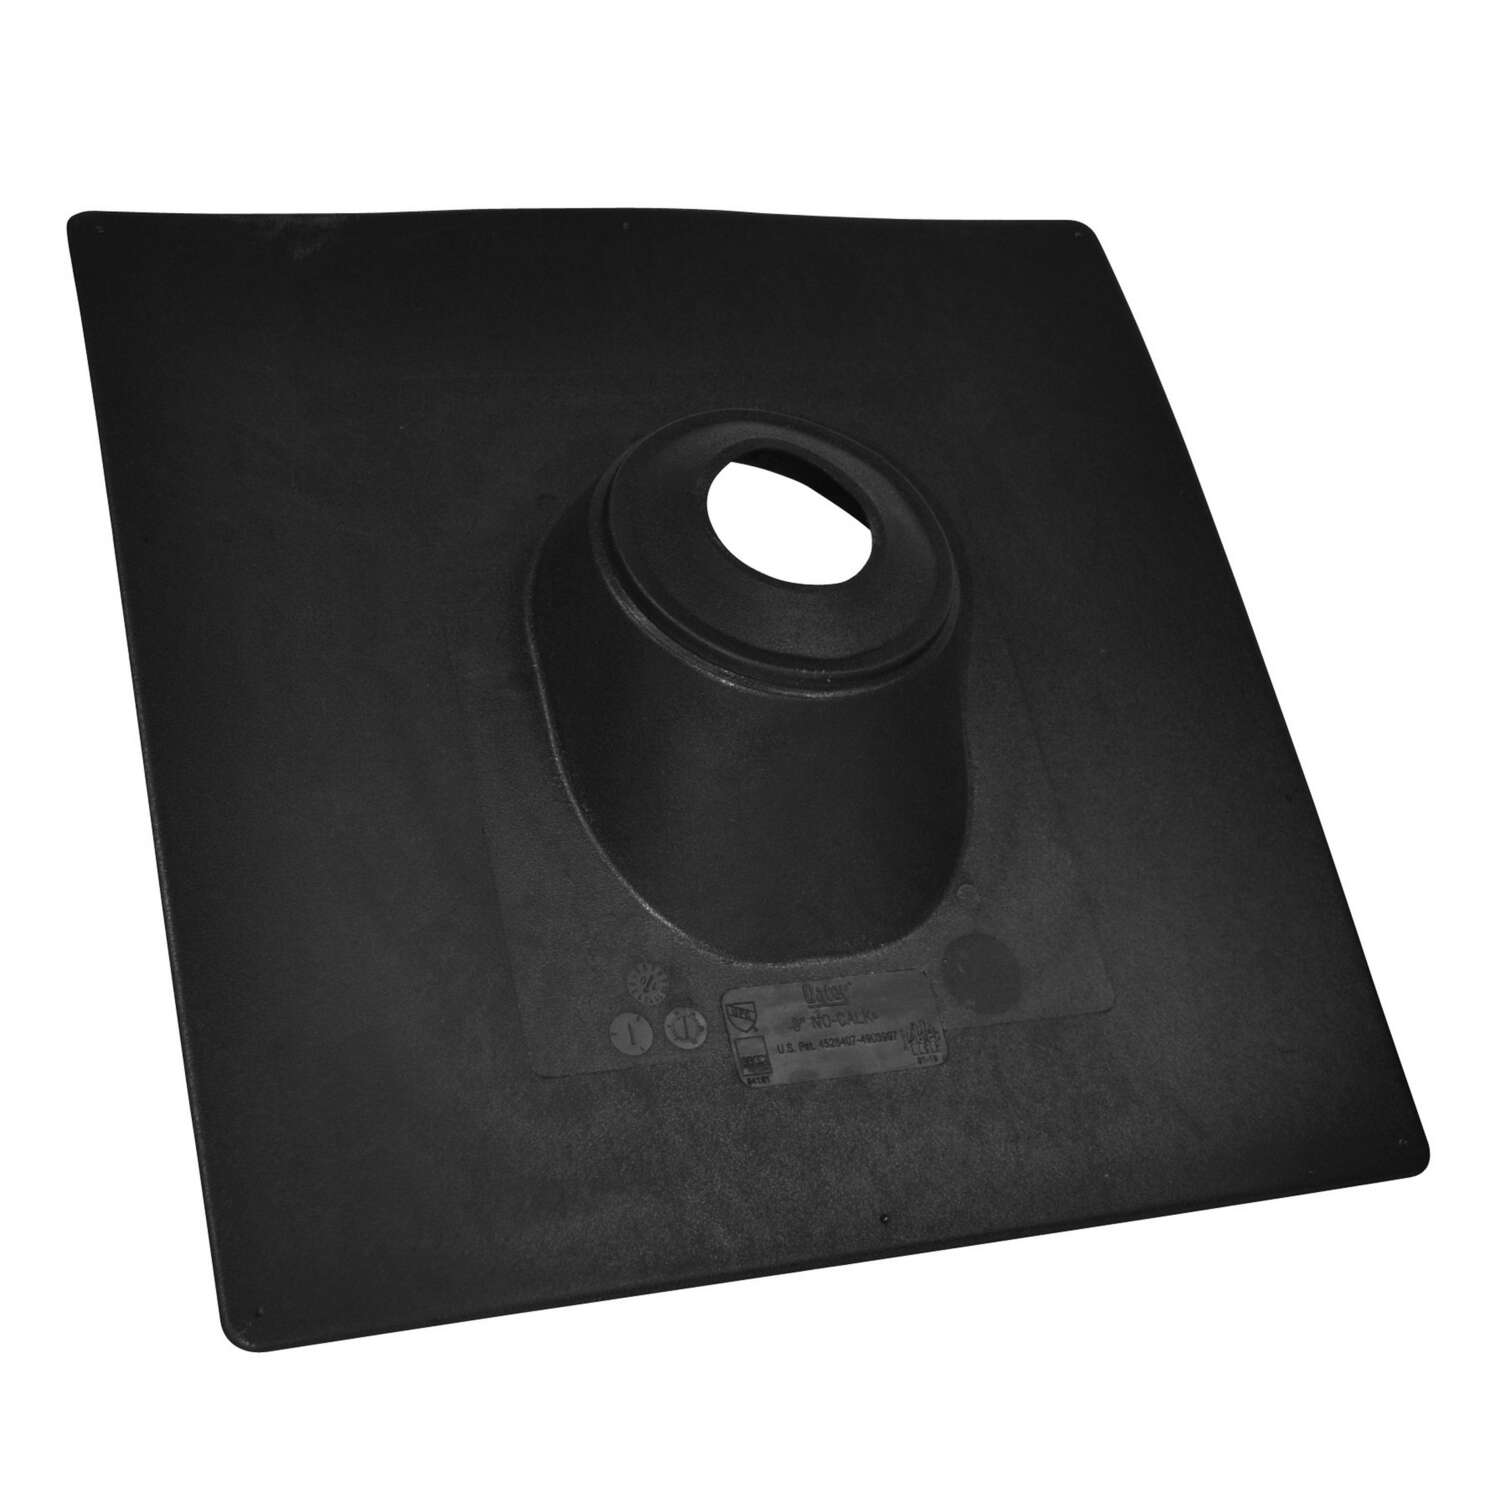 Oatey  No-Calk  12-7/8 in. H x 9-1/4 in. W x 13 in. L Plastic  Rectangle  Black  Roof Flashing